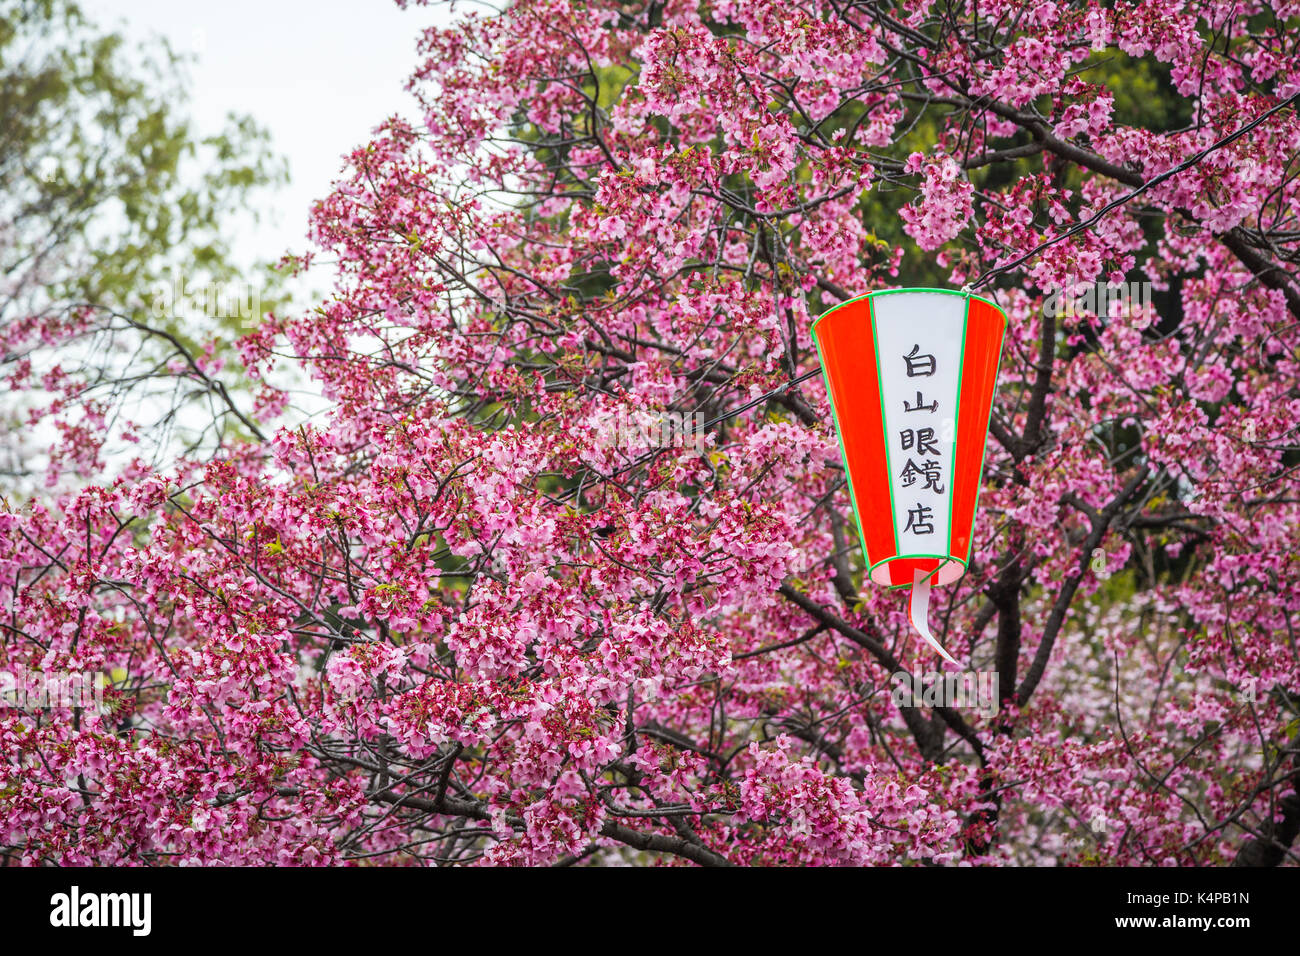 Cherry Blossom Trees And Decorative Lanterns In Ueno Onshi Park